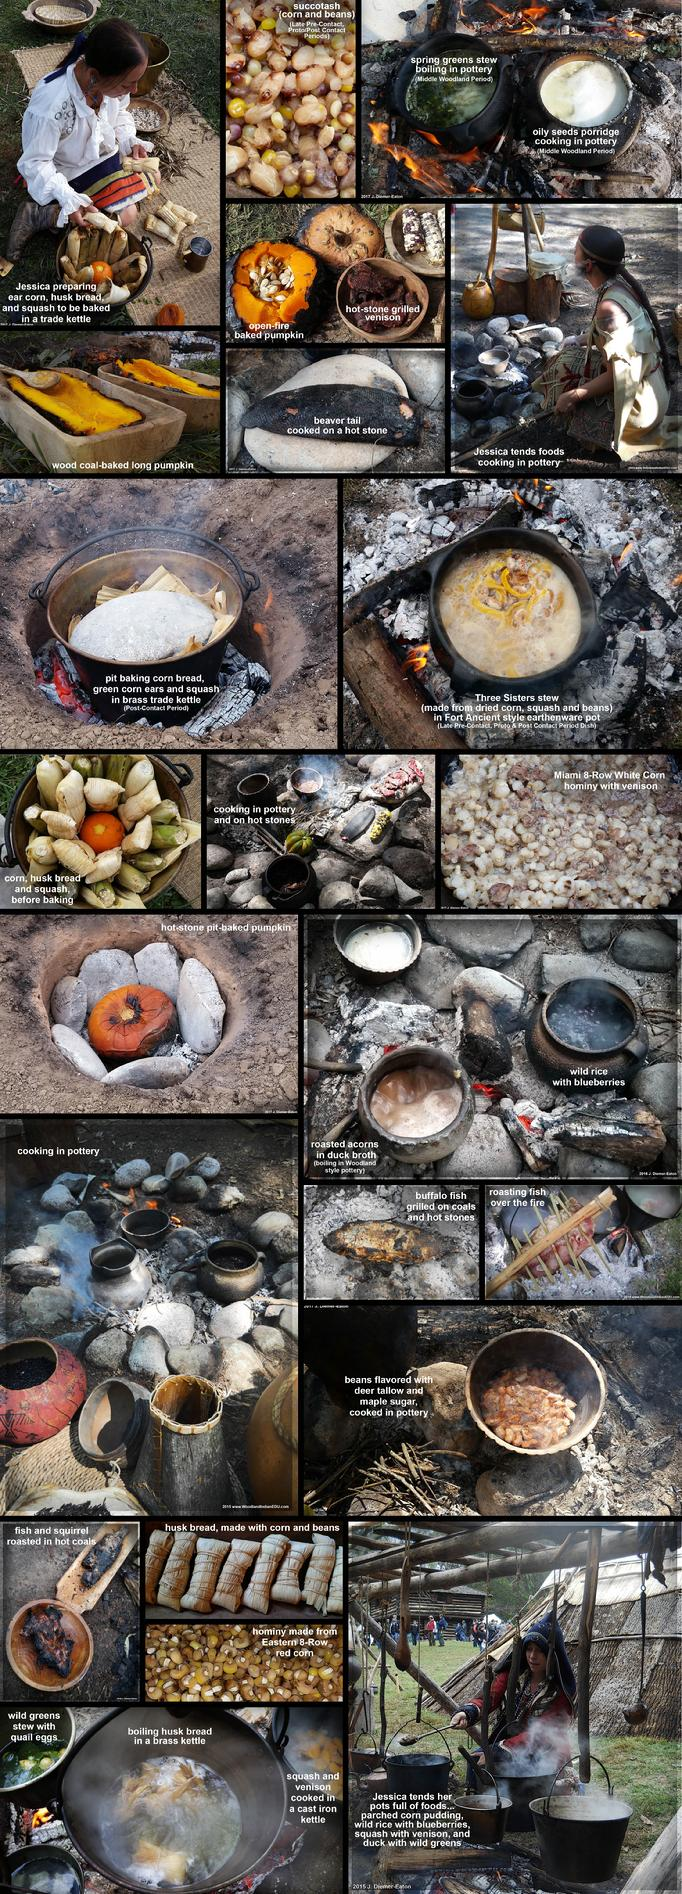 Native American Indian Cooking Foodways